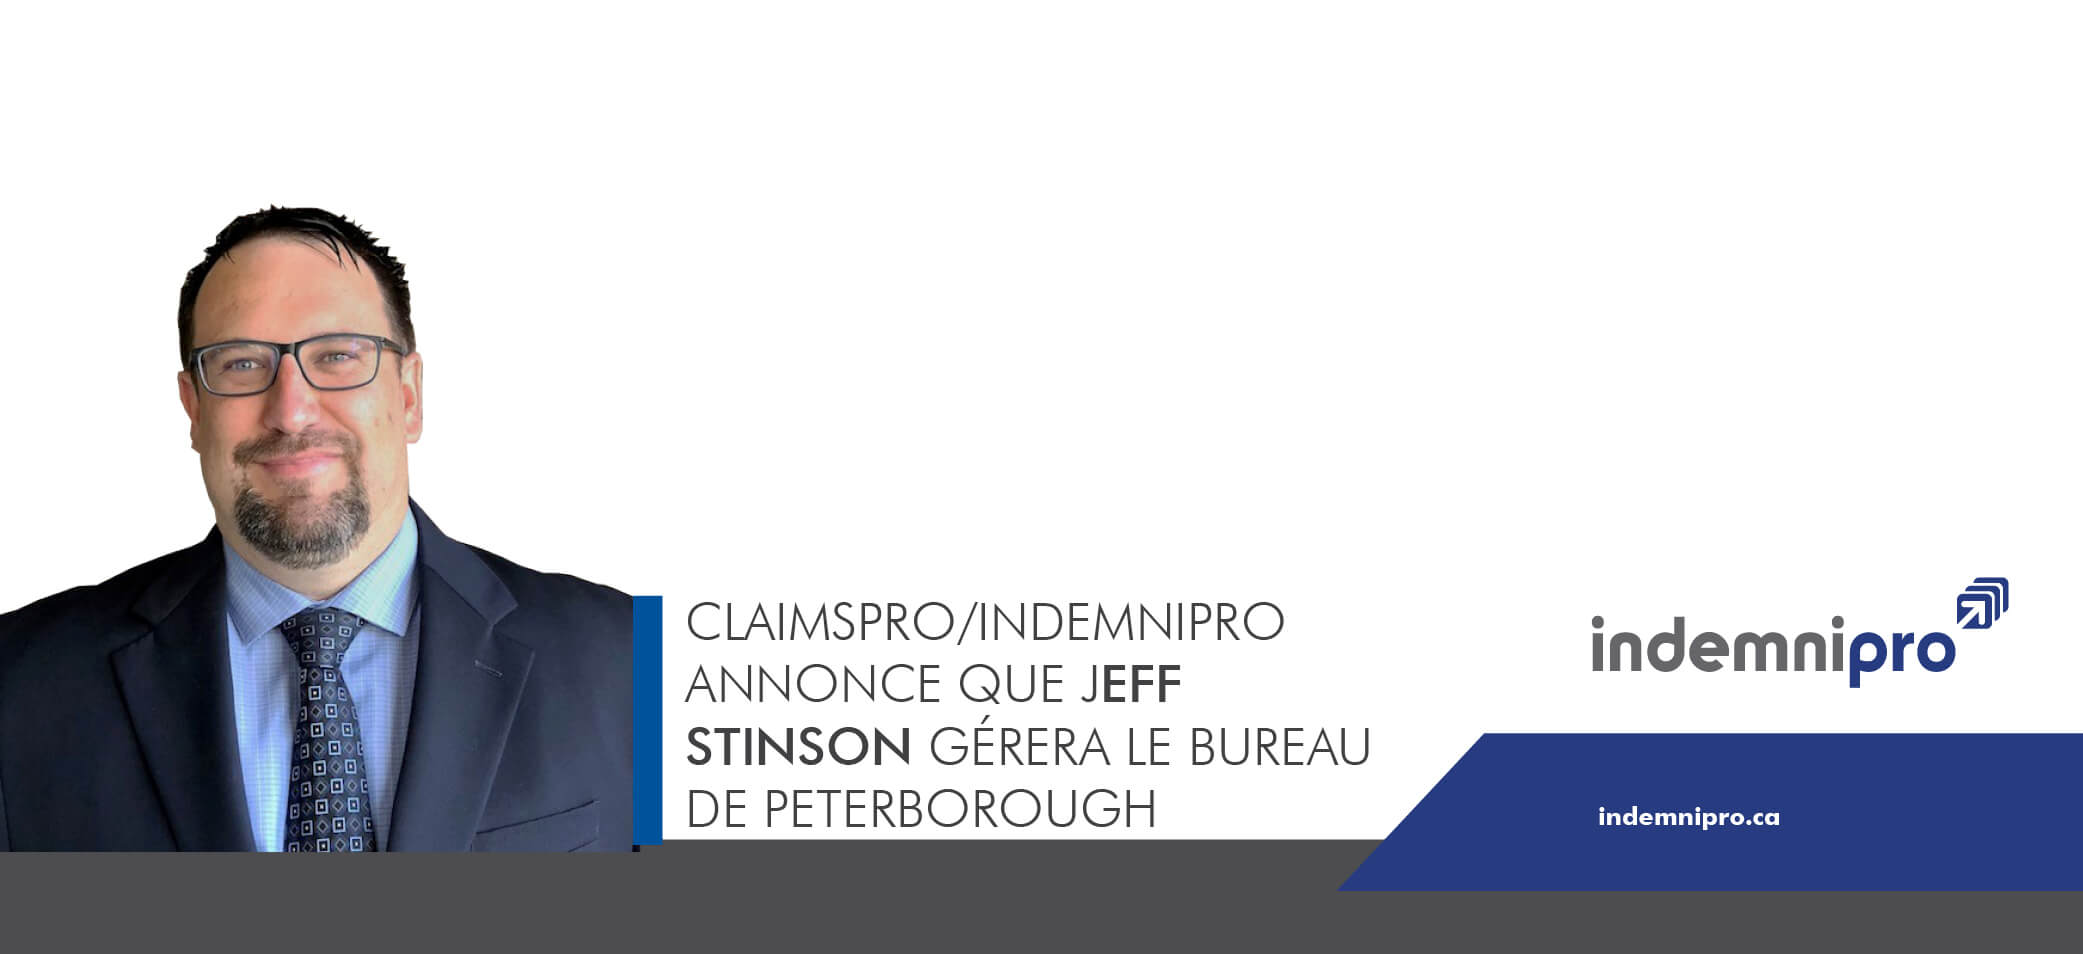 ClaimsPro/IndemniPro Annonce Que Jeff Stinson Gérera Le Bureau De Peterborough